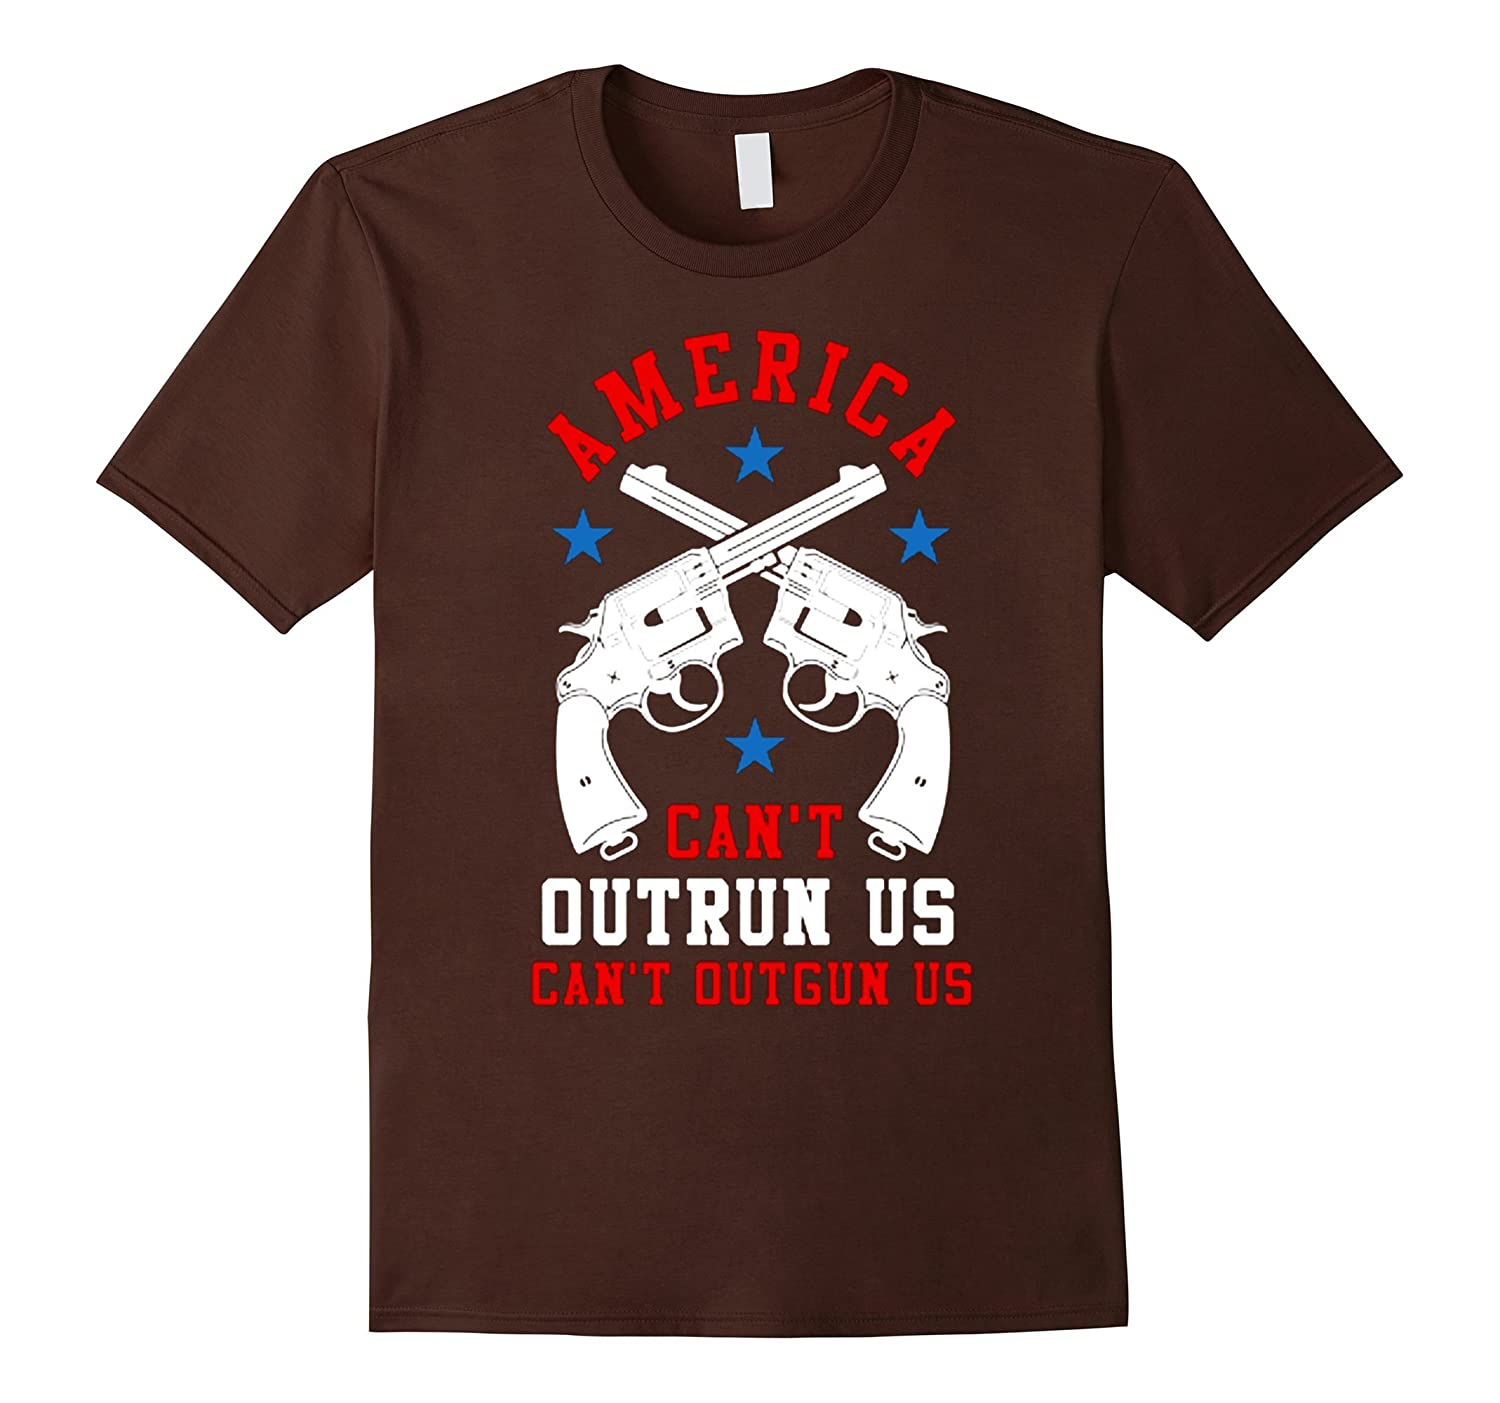 america can't outrun us OutGun us Trump flag july 4th shirt